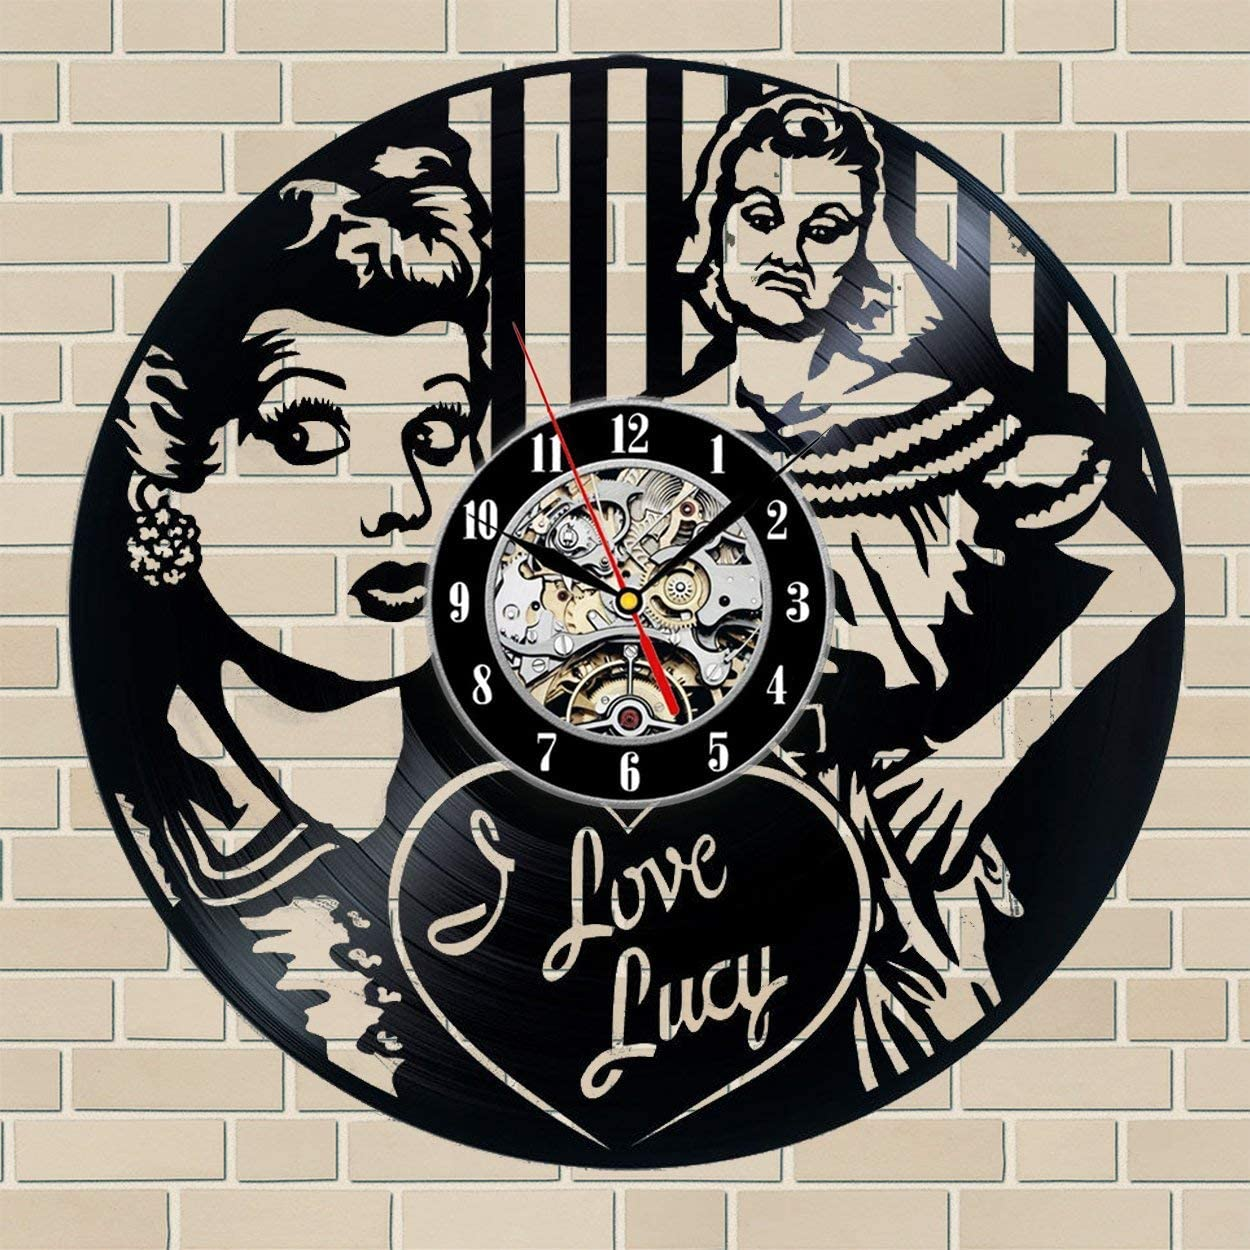 Wood Crafty Shop Movie Vinyl Record Wall Clock Gift for Him and Her Unique Wall Decor The Best Gift Idea for Any Event Birthday Gift, Wedding Gift